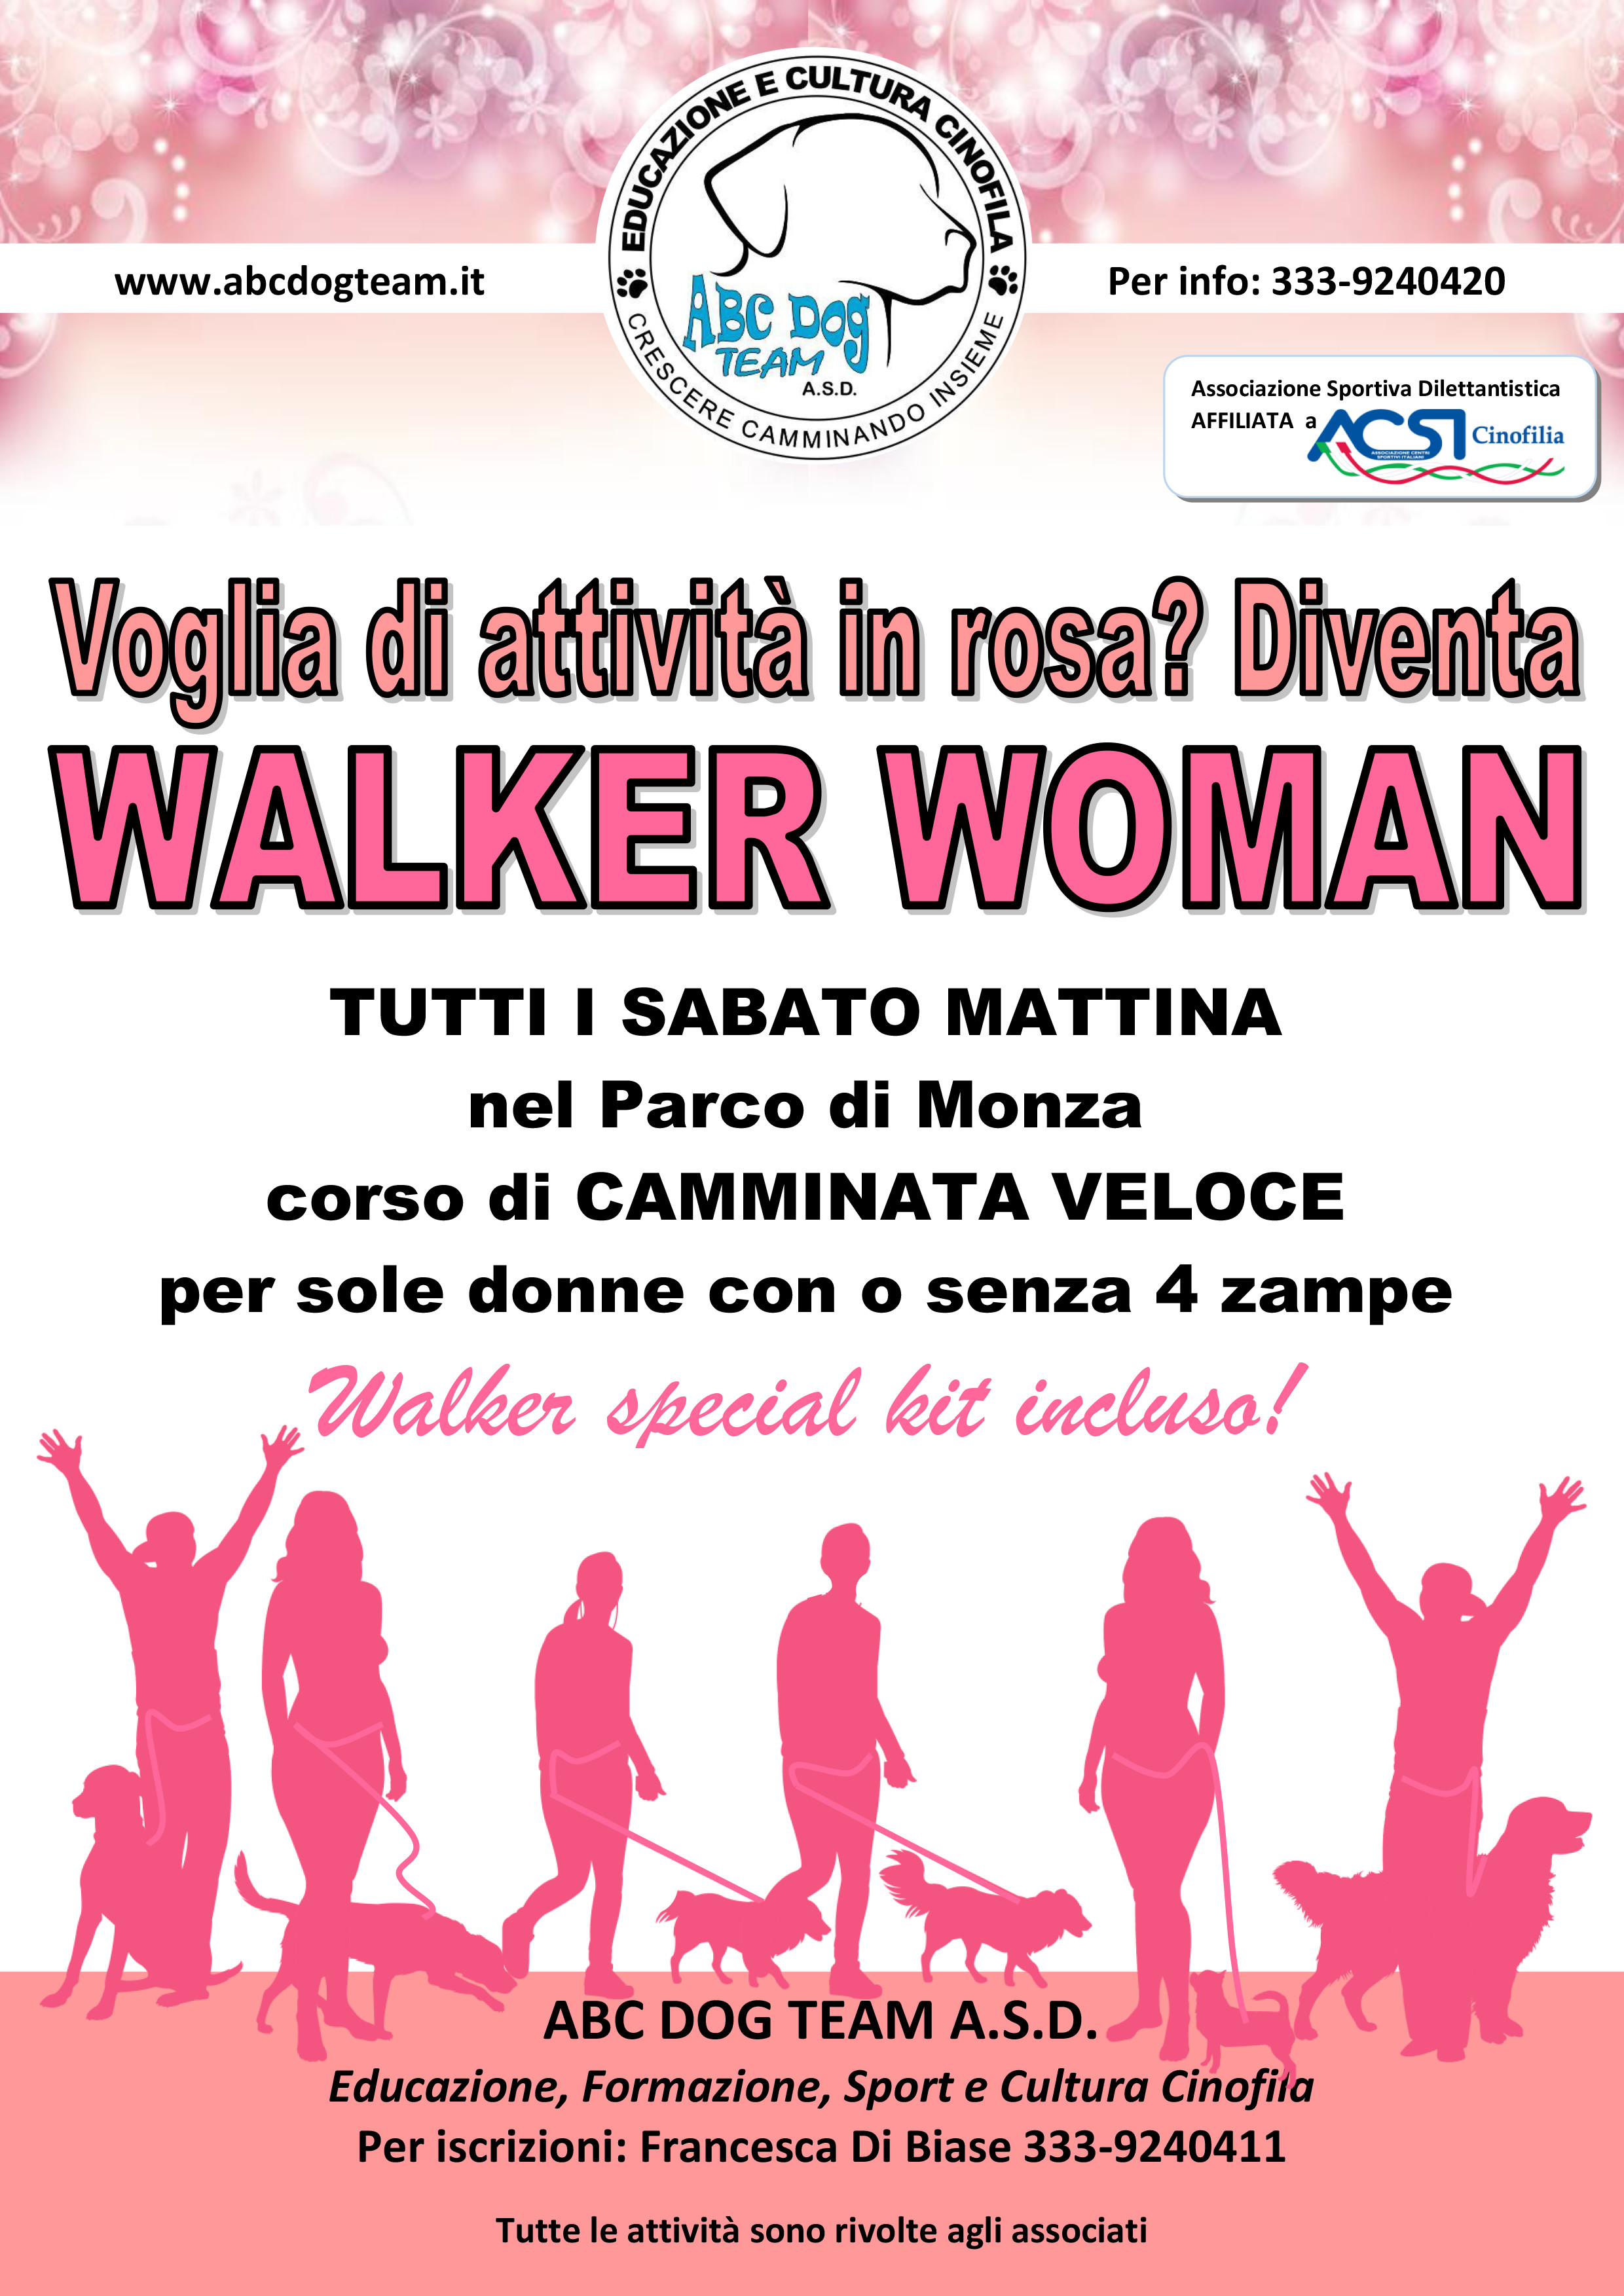 ABC DOG TEAM WALKER WOMAN ACTIVITY MONZA